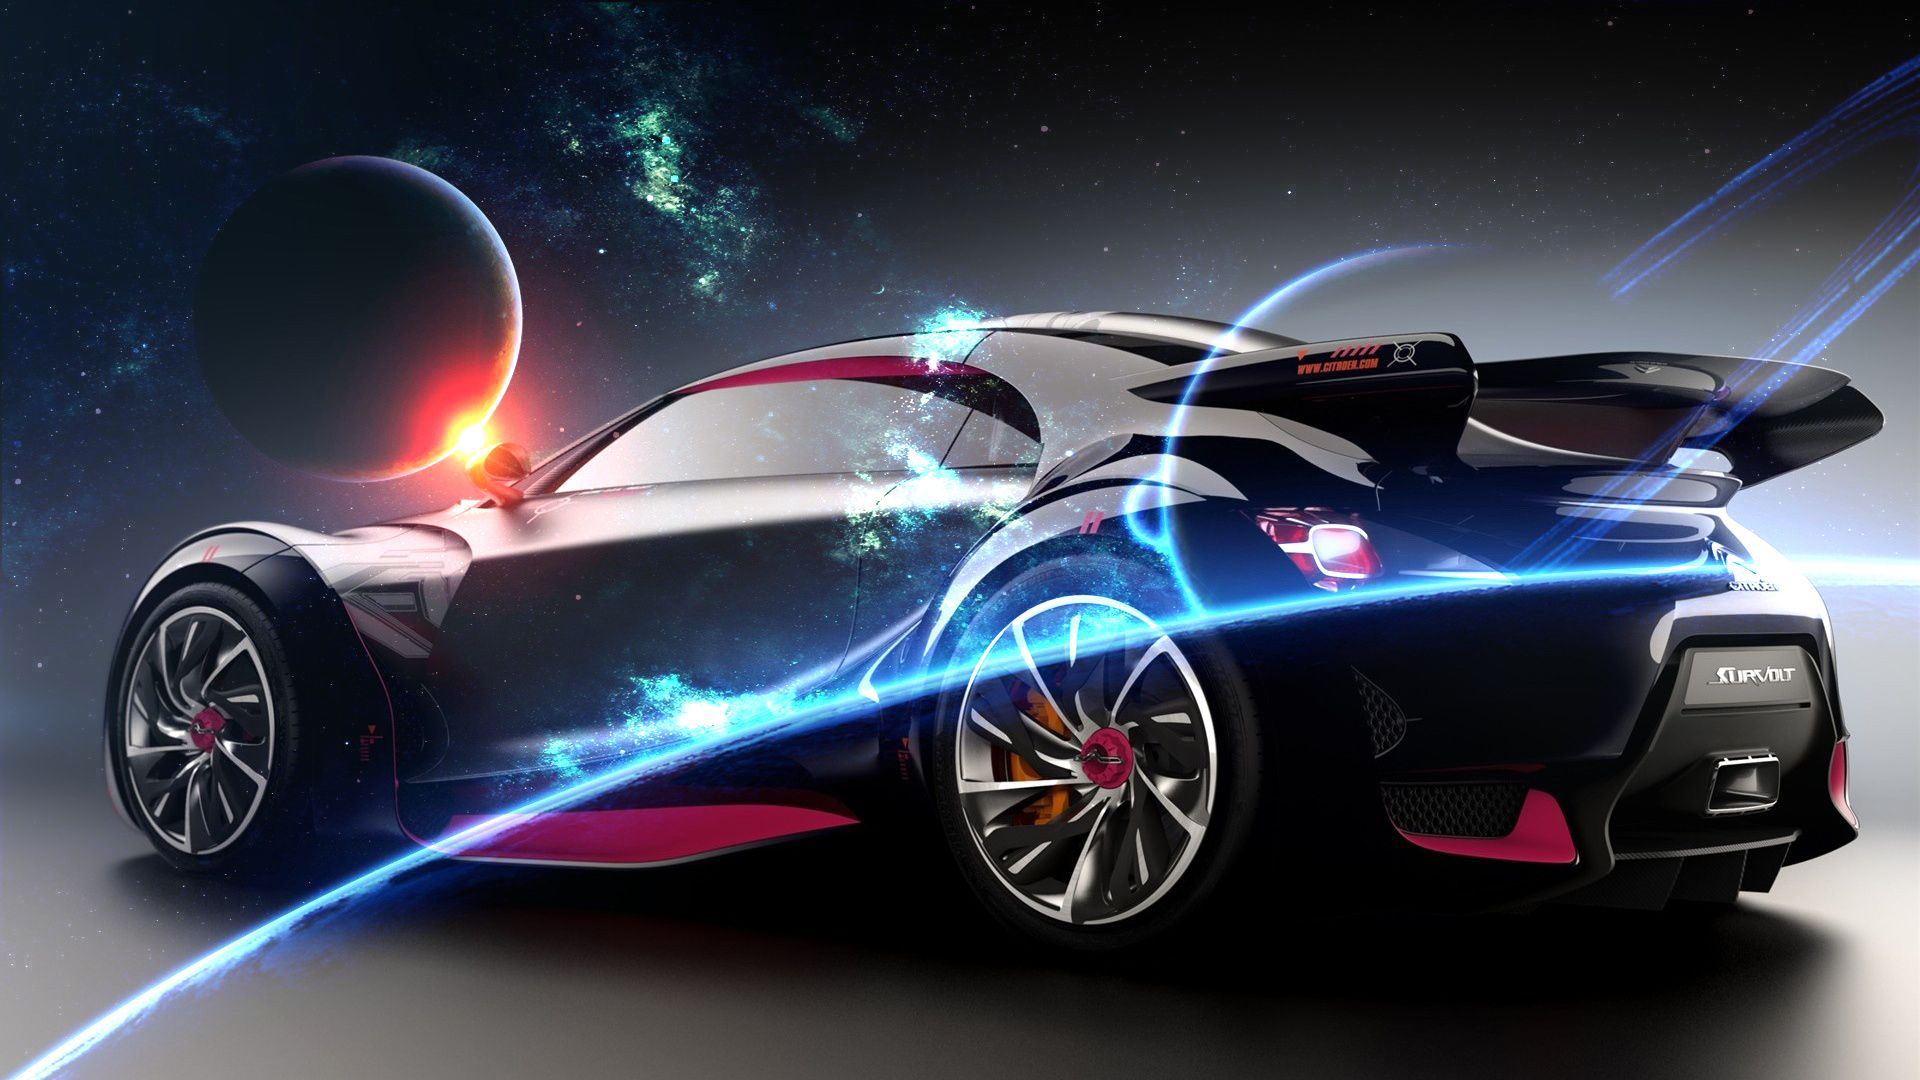 Citro n hd wallpaper background image 1920x1080 id 334708 wallpaper abyss - Asphalt 8 hd images ...